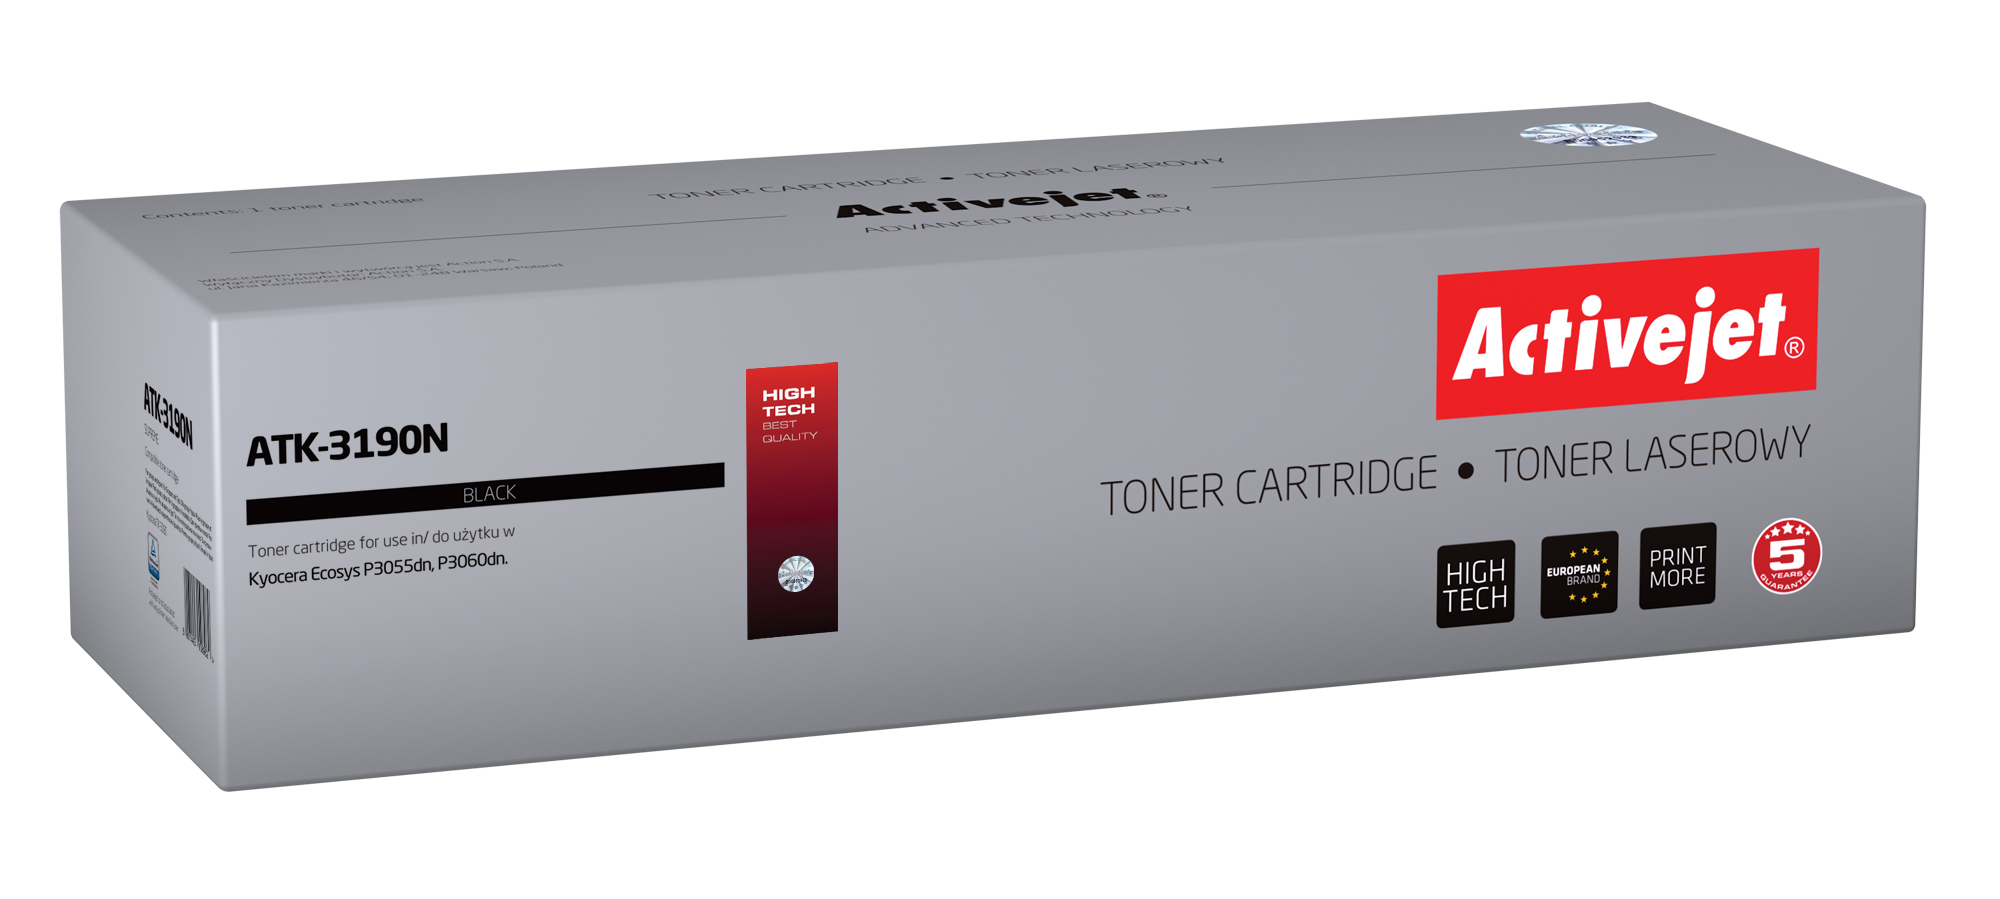 Activejet toner do Kyocera TK-3190 new ATK-3190N